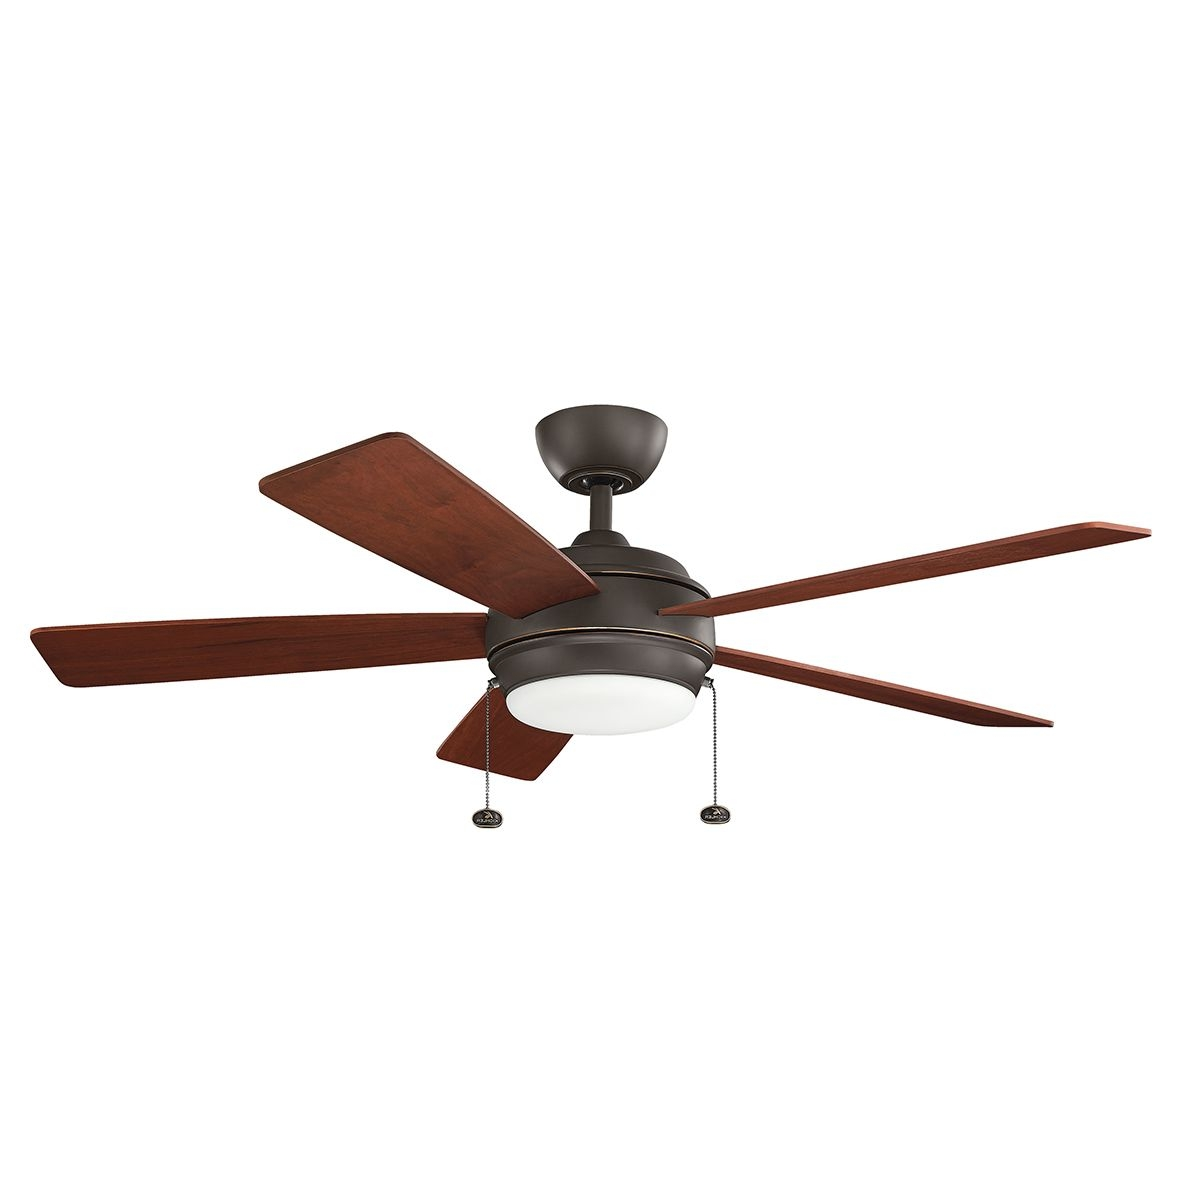 Kmart Outdoor Ceiling Fans Throughout Recent Hugger 52 In Black Ceiling Fan Awesome Modern White Ceiling Fans (View 8 of 20)